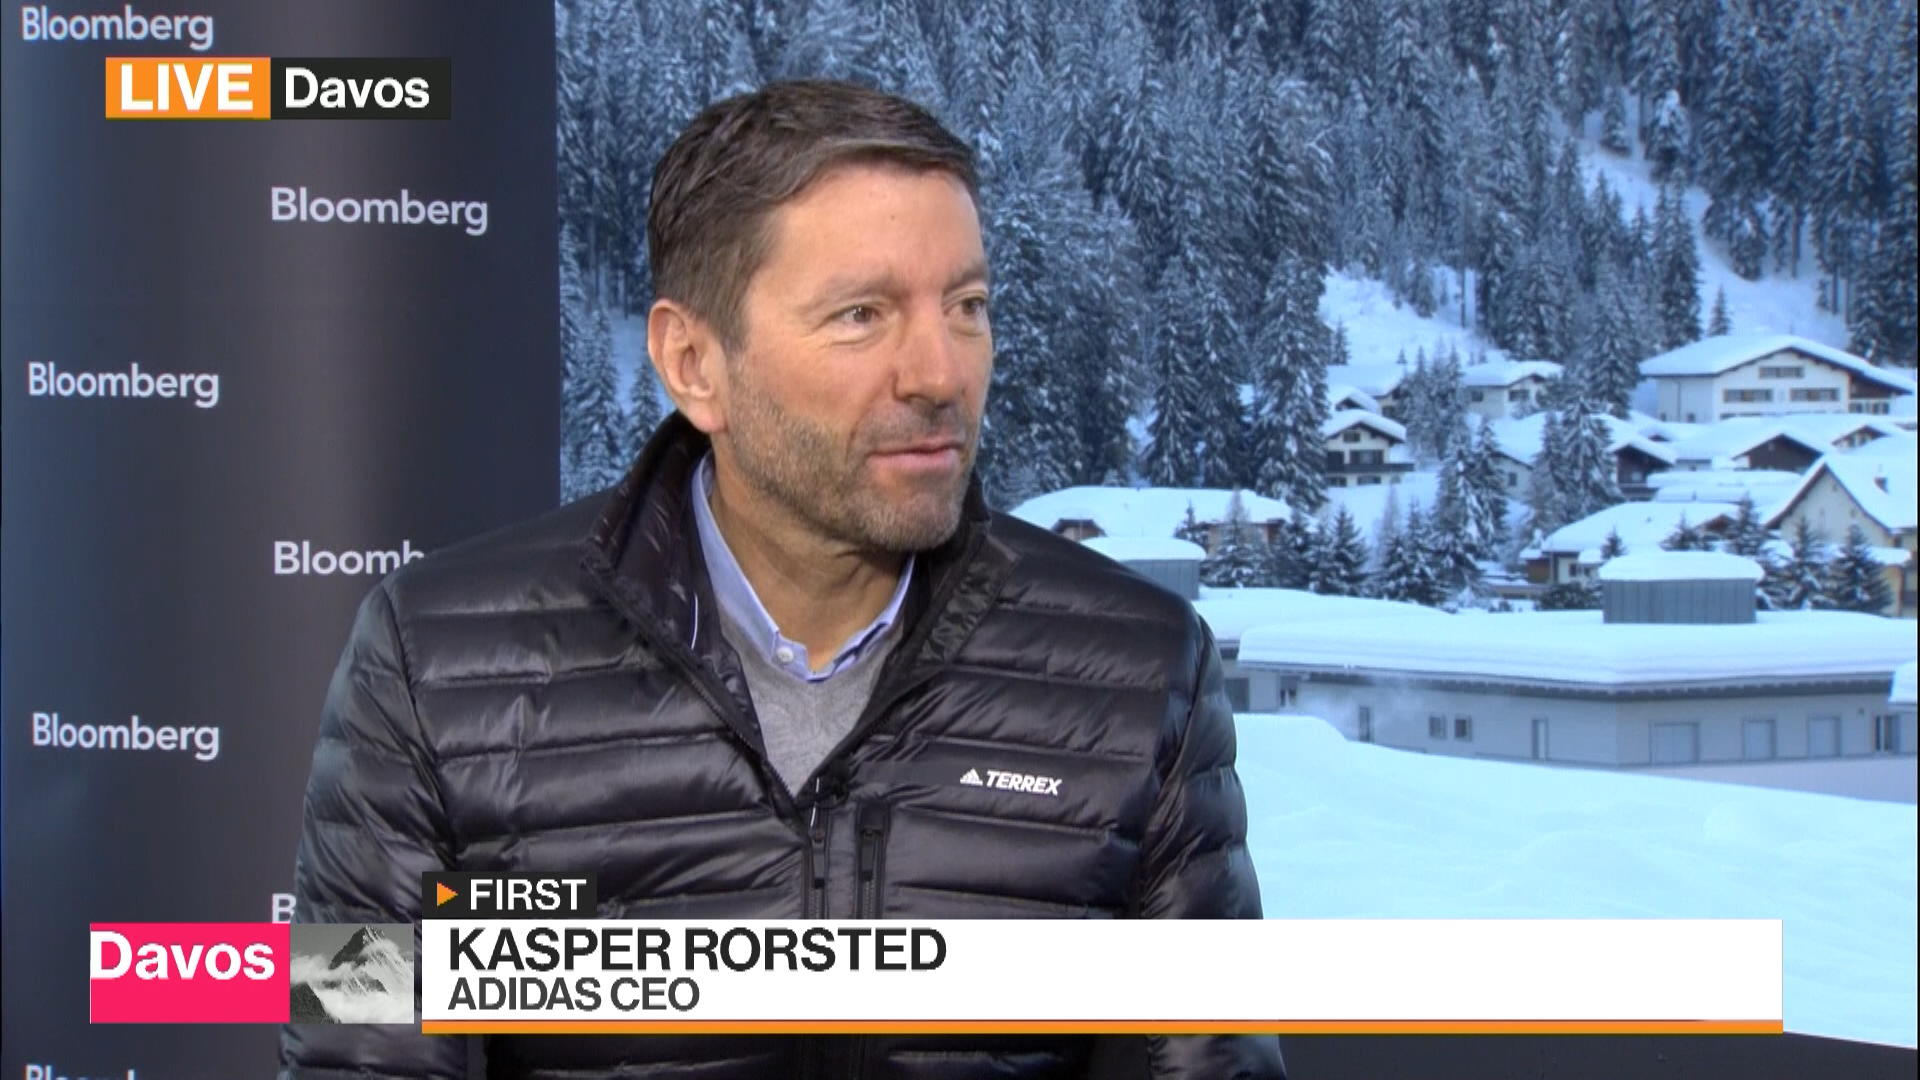 Hormiga cápsula oleada  Adidas CEO Says U.S. Is 'Very Strong', More Worried About Europe - Bloomberg